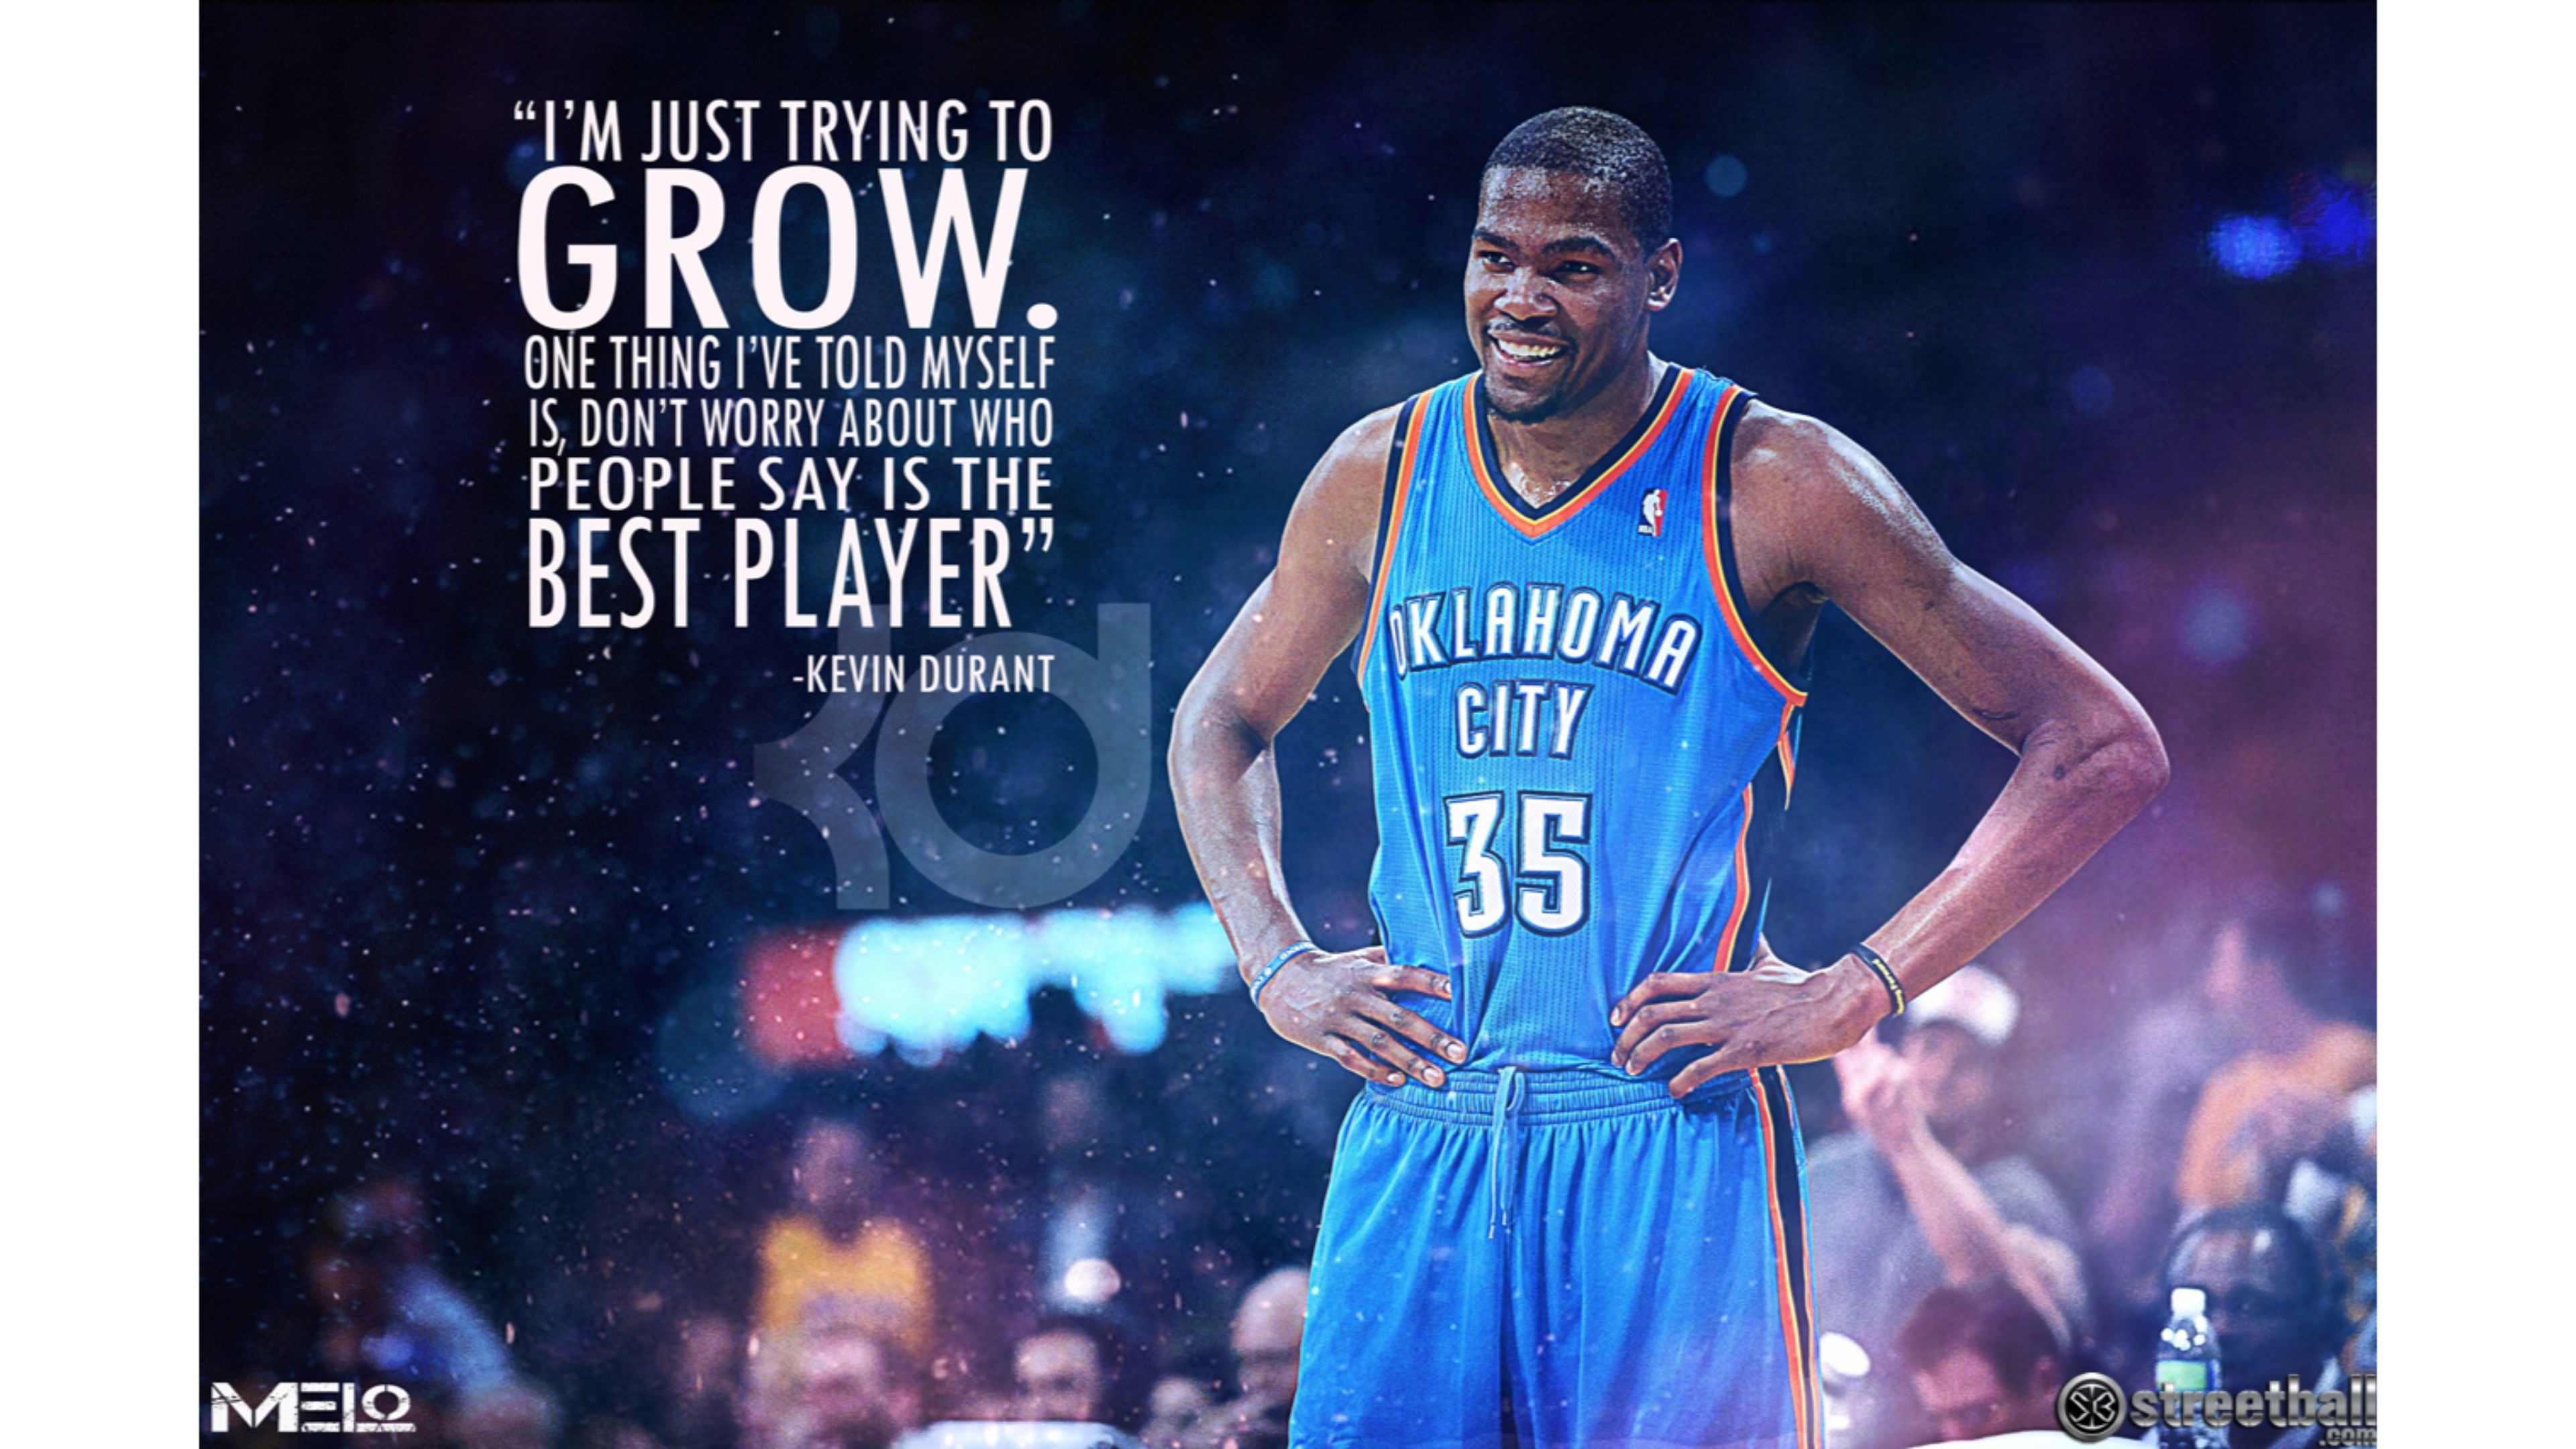 Kevin Durant Wallpaper 2015 Hd 105 images in Collection Page 1 3840x2160